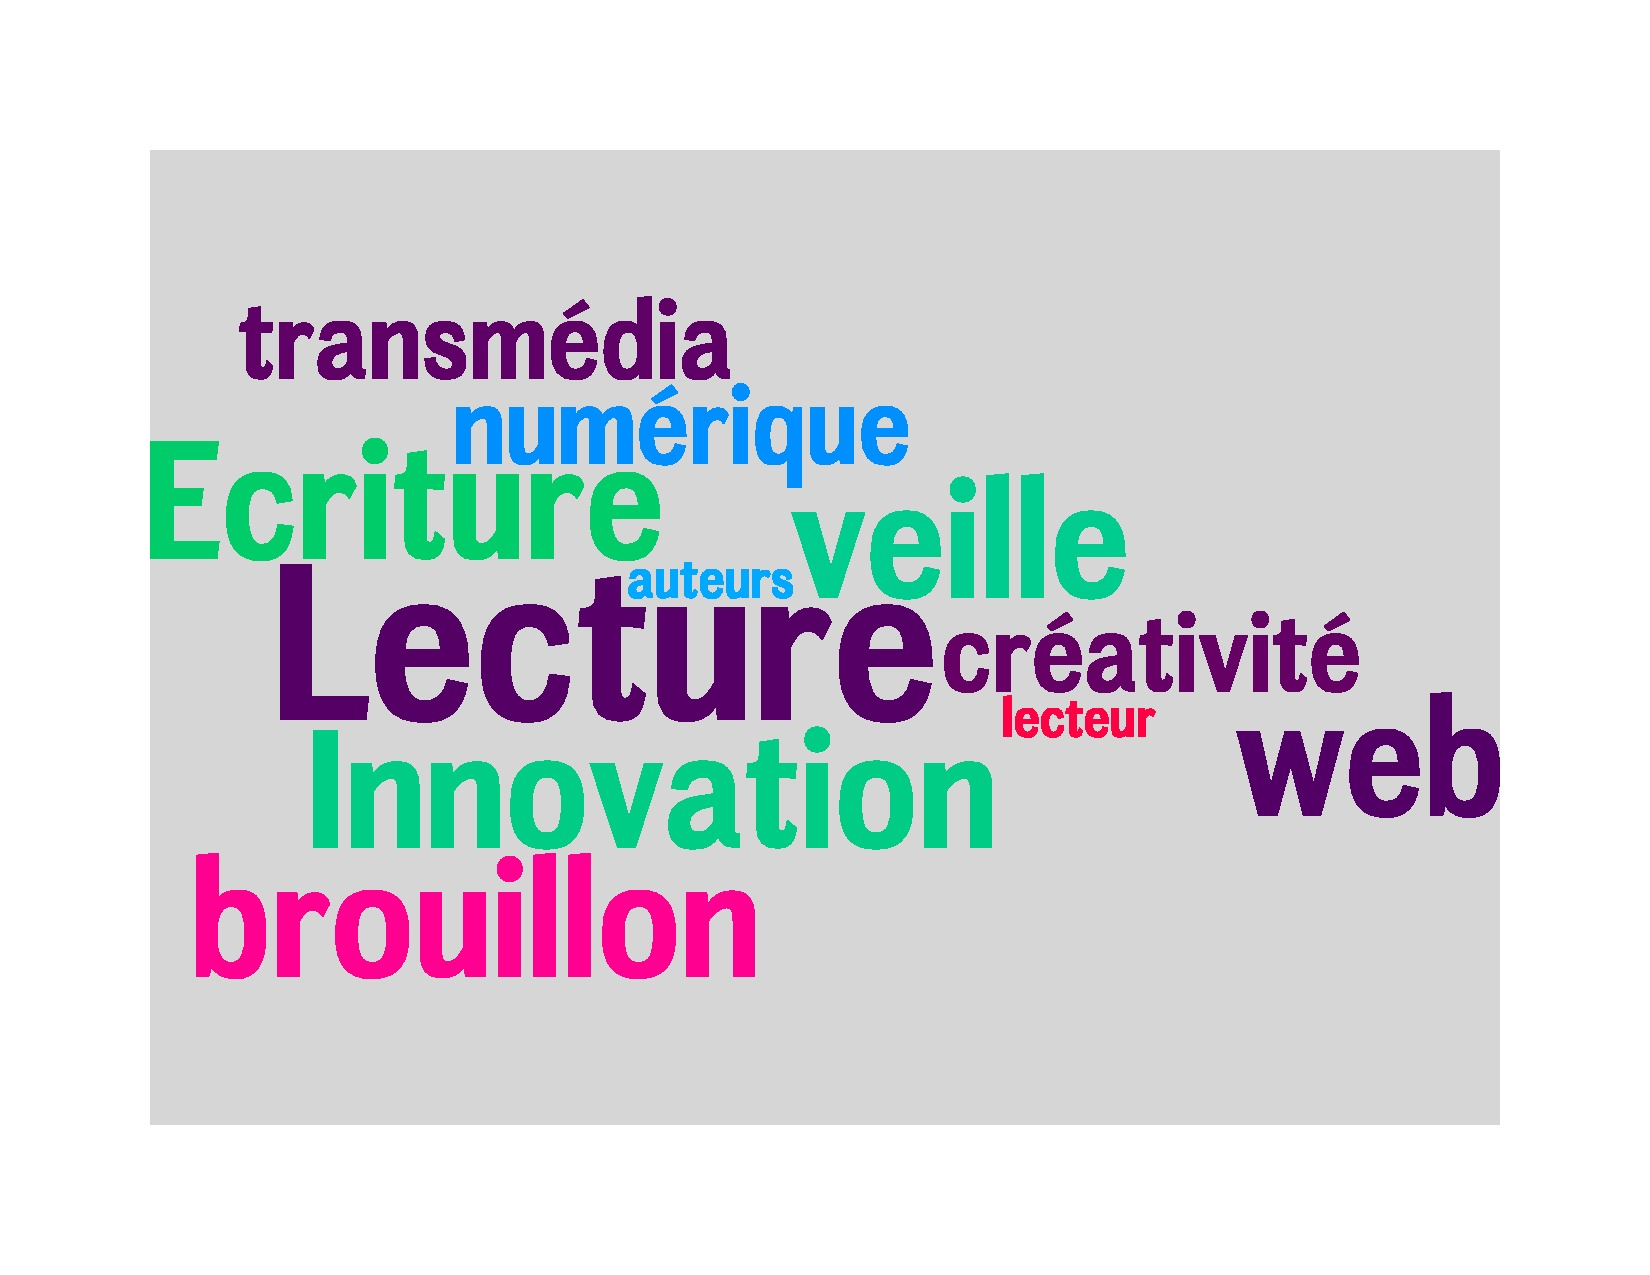 Veille Innovation Lecture Ecriture